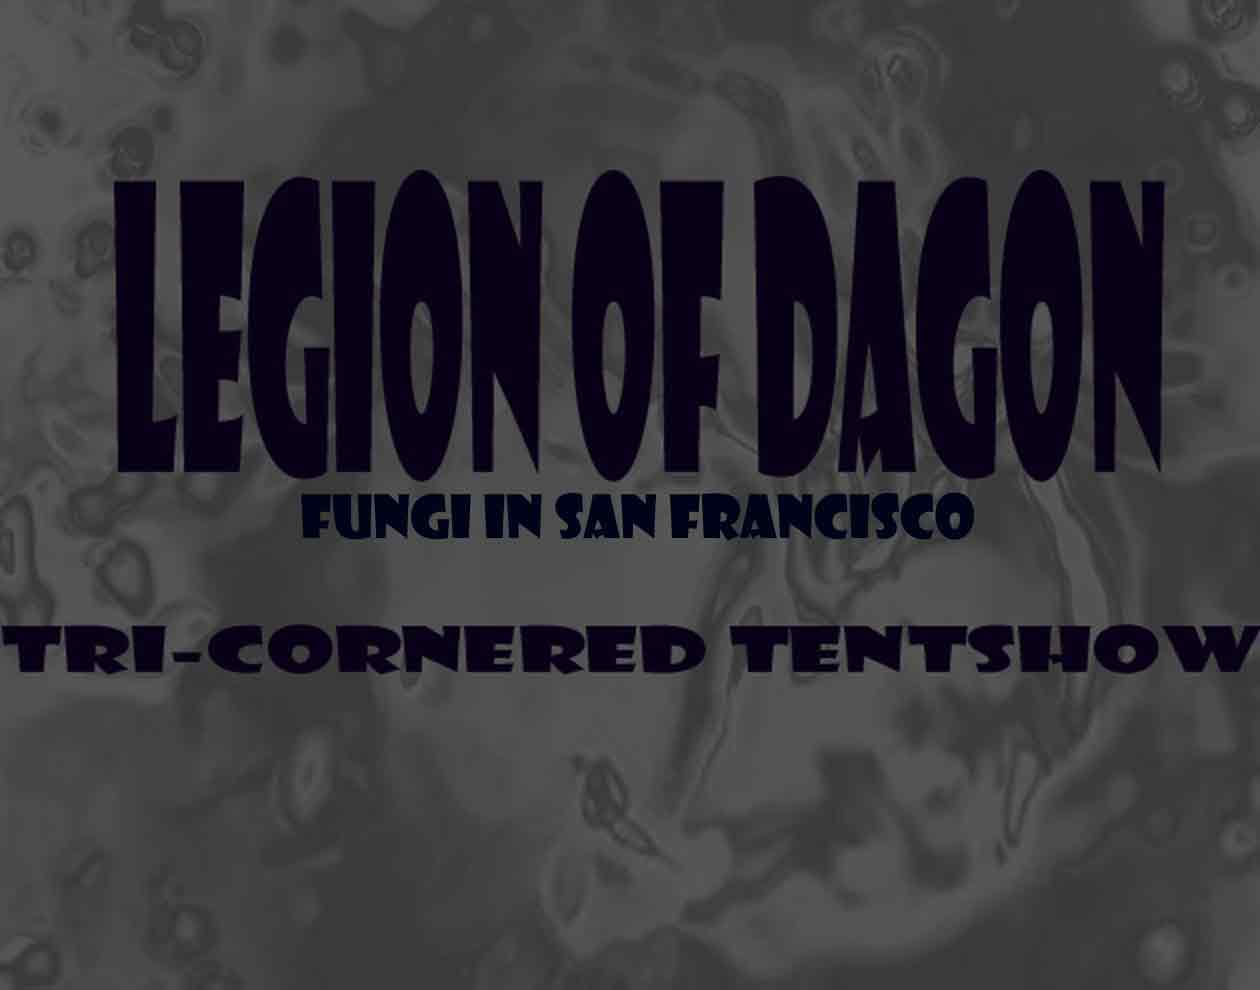 TRI-CORNERED TENT SHOW  - Legion of Dagon